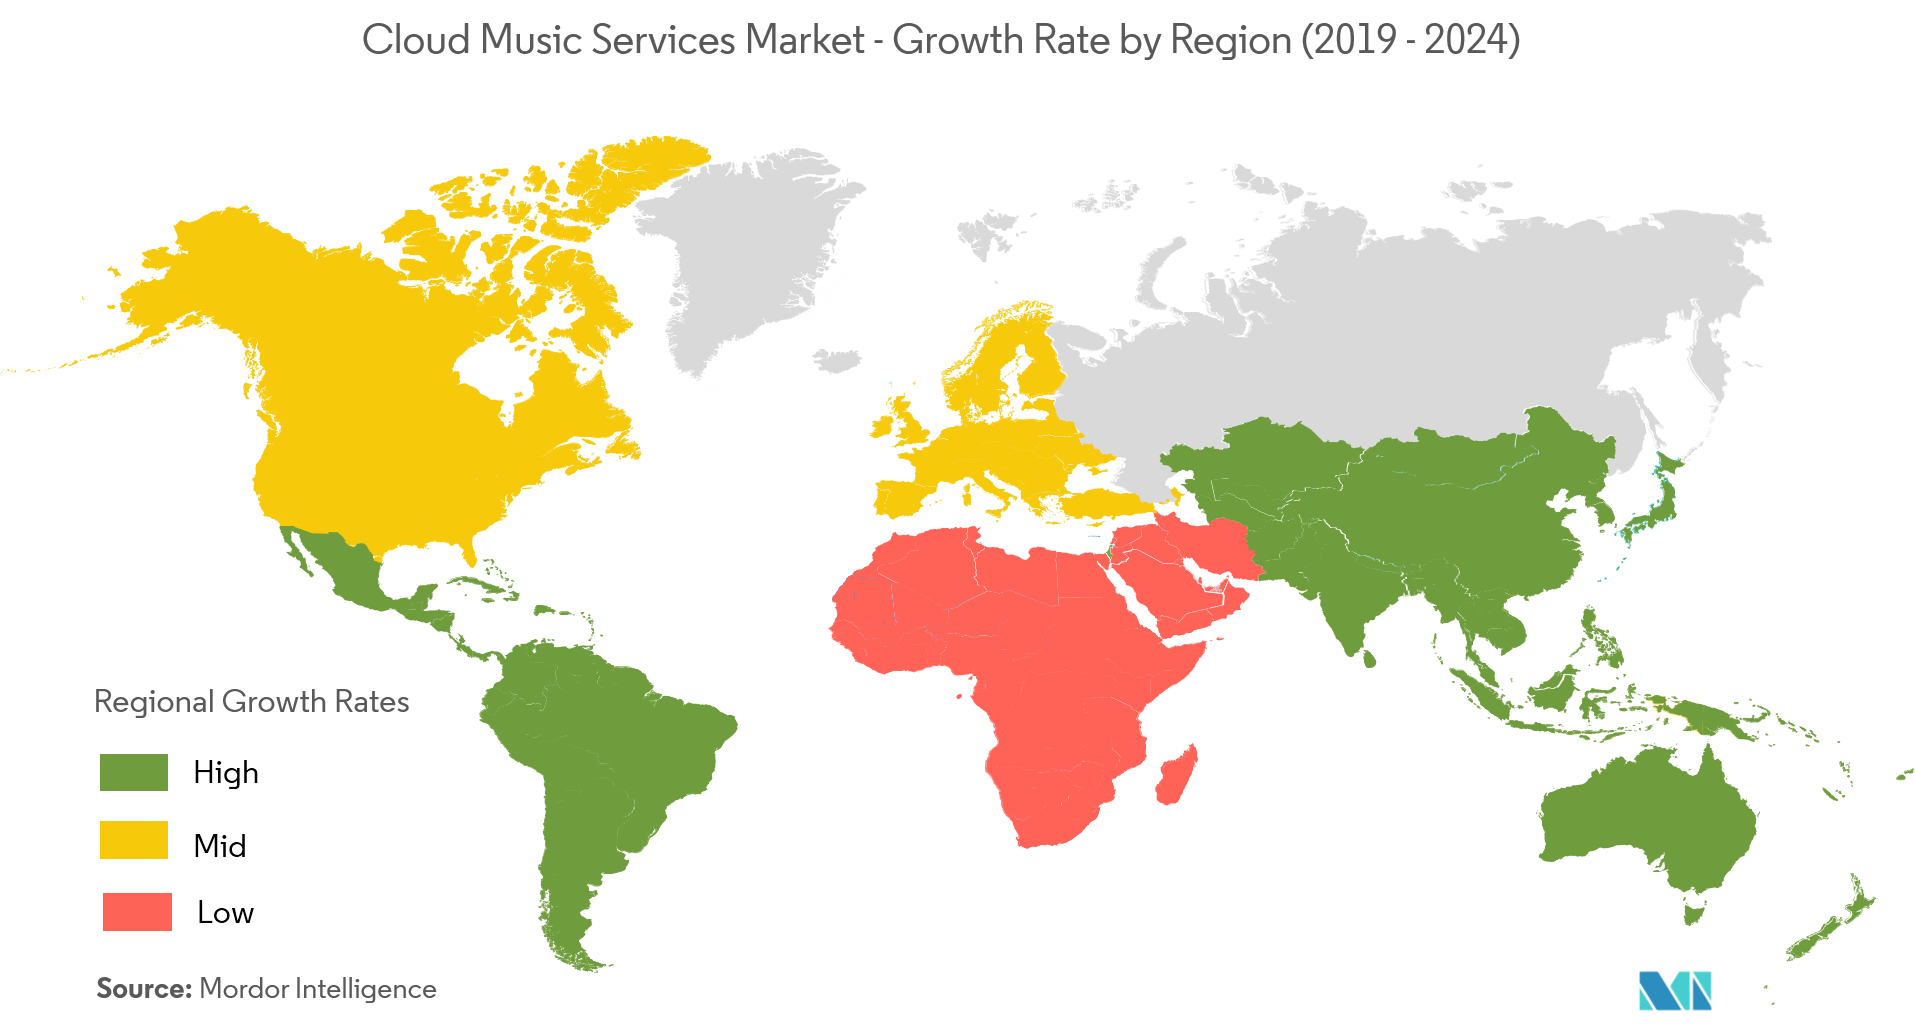 cloud music services market